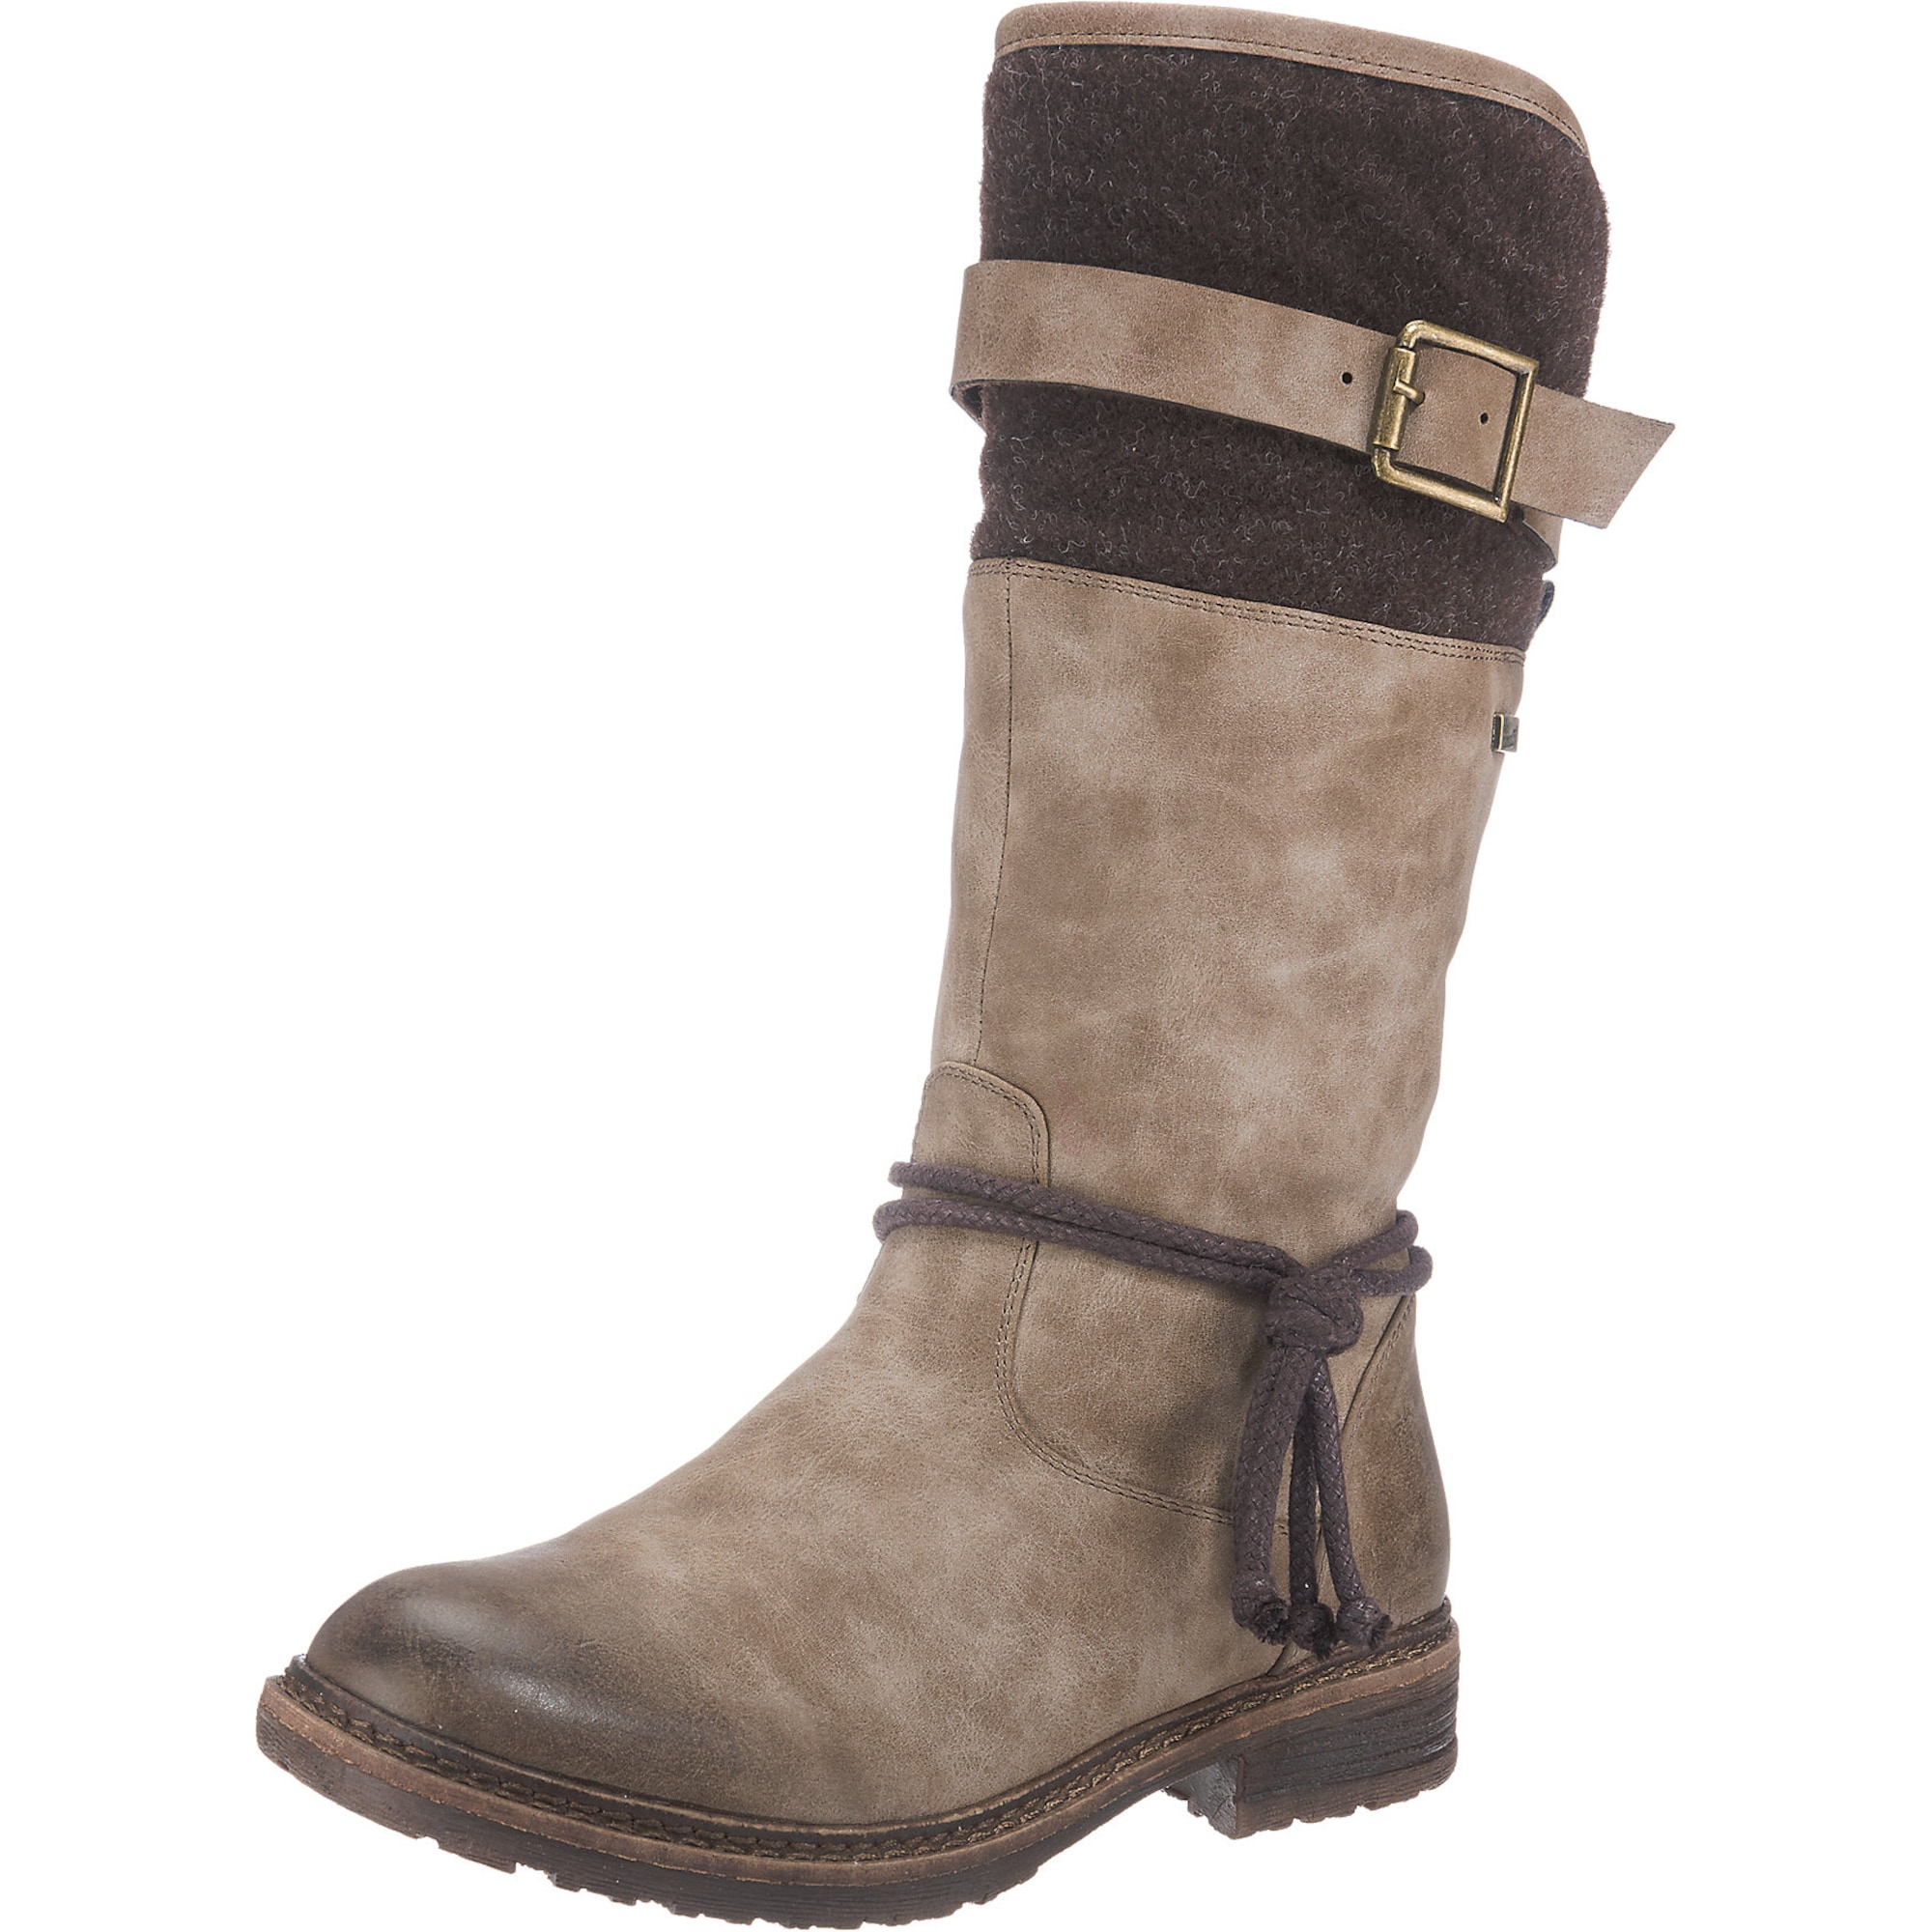 huge selection of e15d1 c22a5 AboutYou | SALE Damen RIEKER Stiefel beige, braun ...